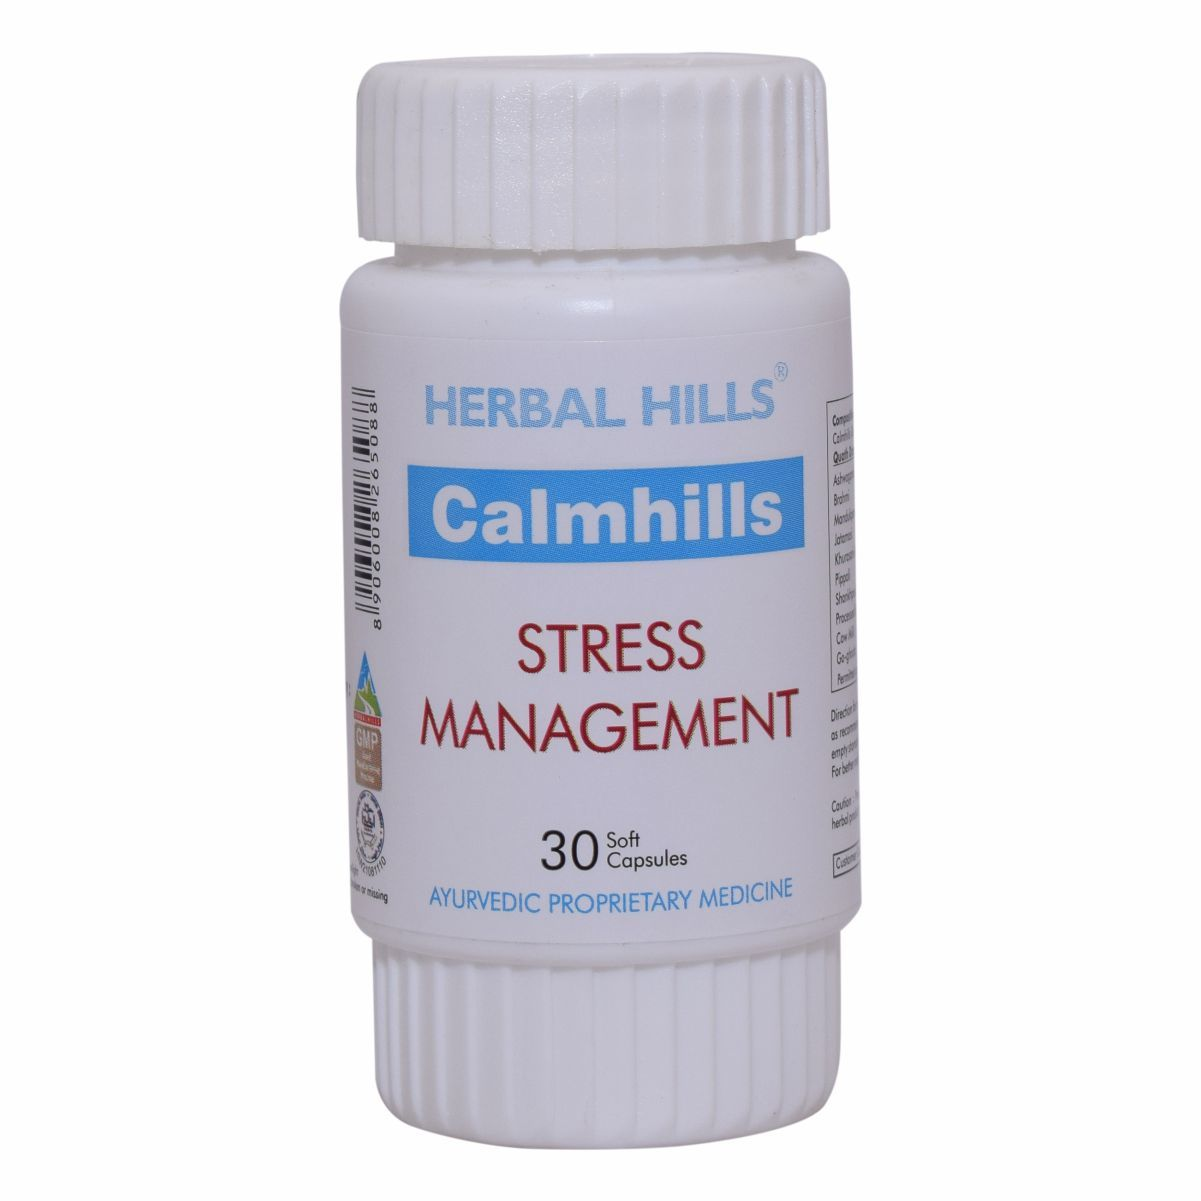 ayurvedic medicine for stress and depression - Calmhills 900 Tablets